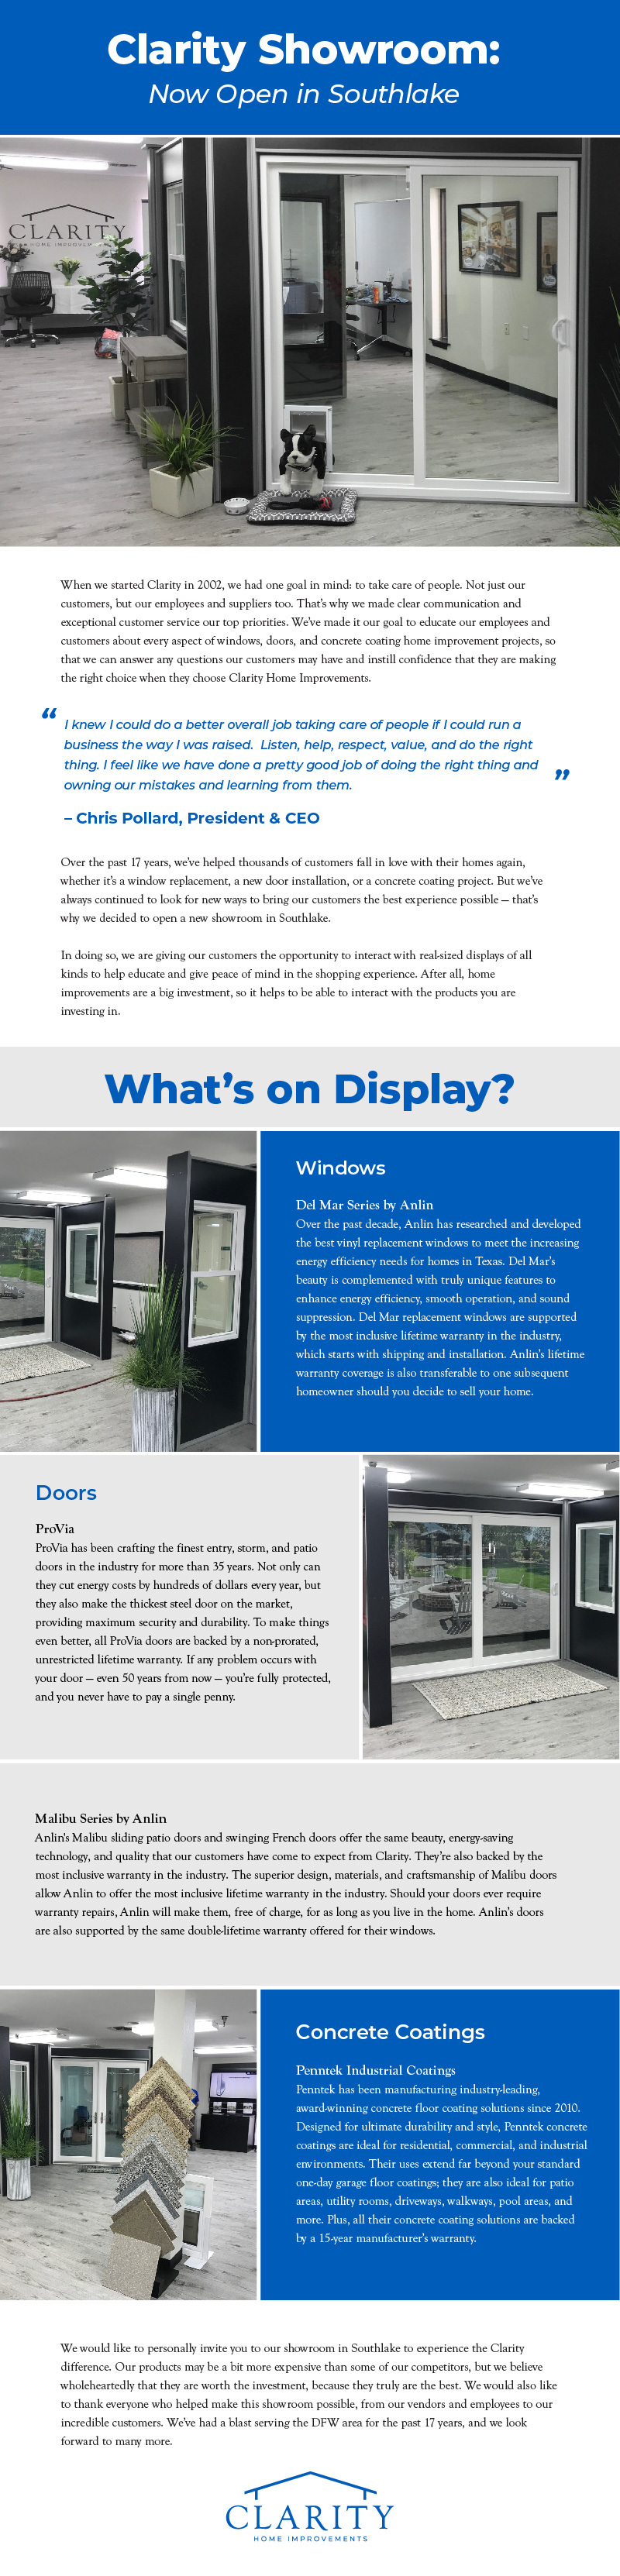 Southlake Showroom Infographic